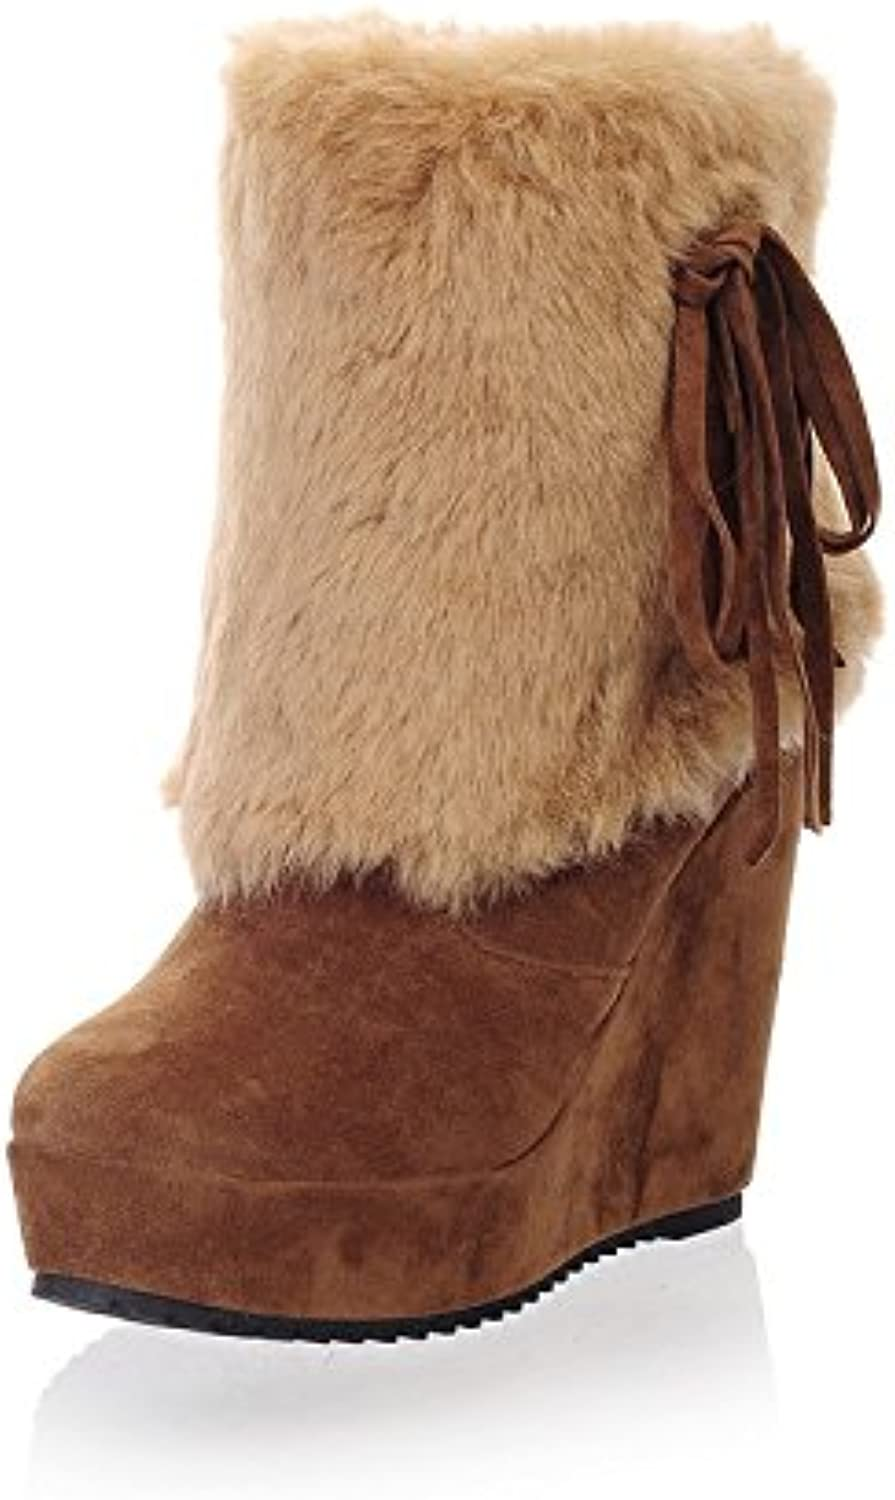 Top Shishang Autumn Winter Wedges high-Heeled Snow Boots Women's Platform Warmth Lined Middle Waist Calf Boots